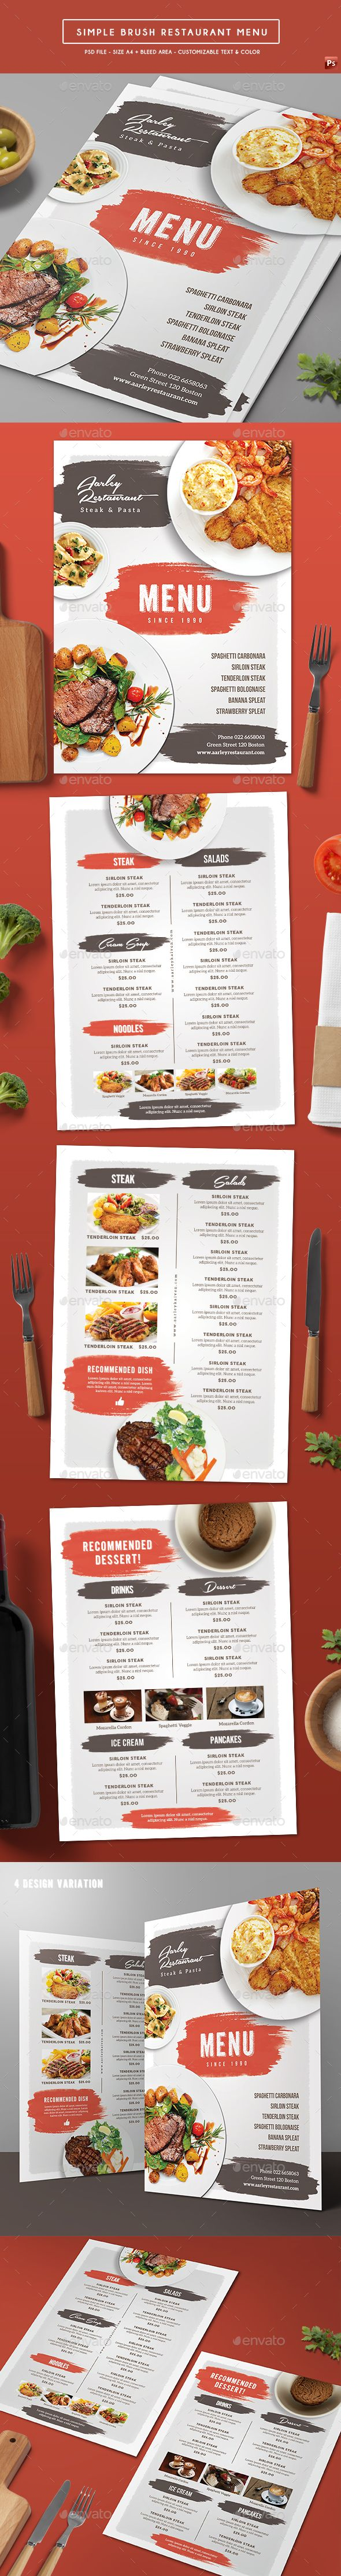 Best 25 Restaurant menu template ideas – Food Menu Template